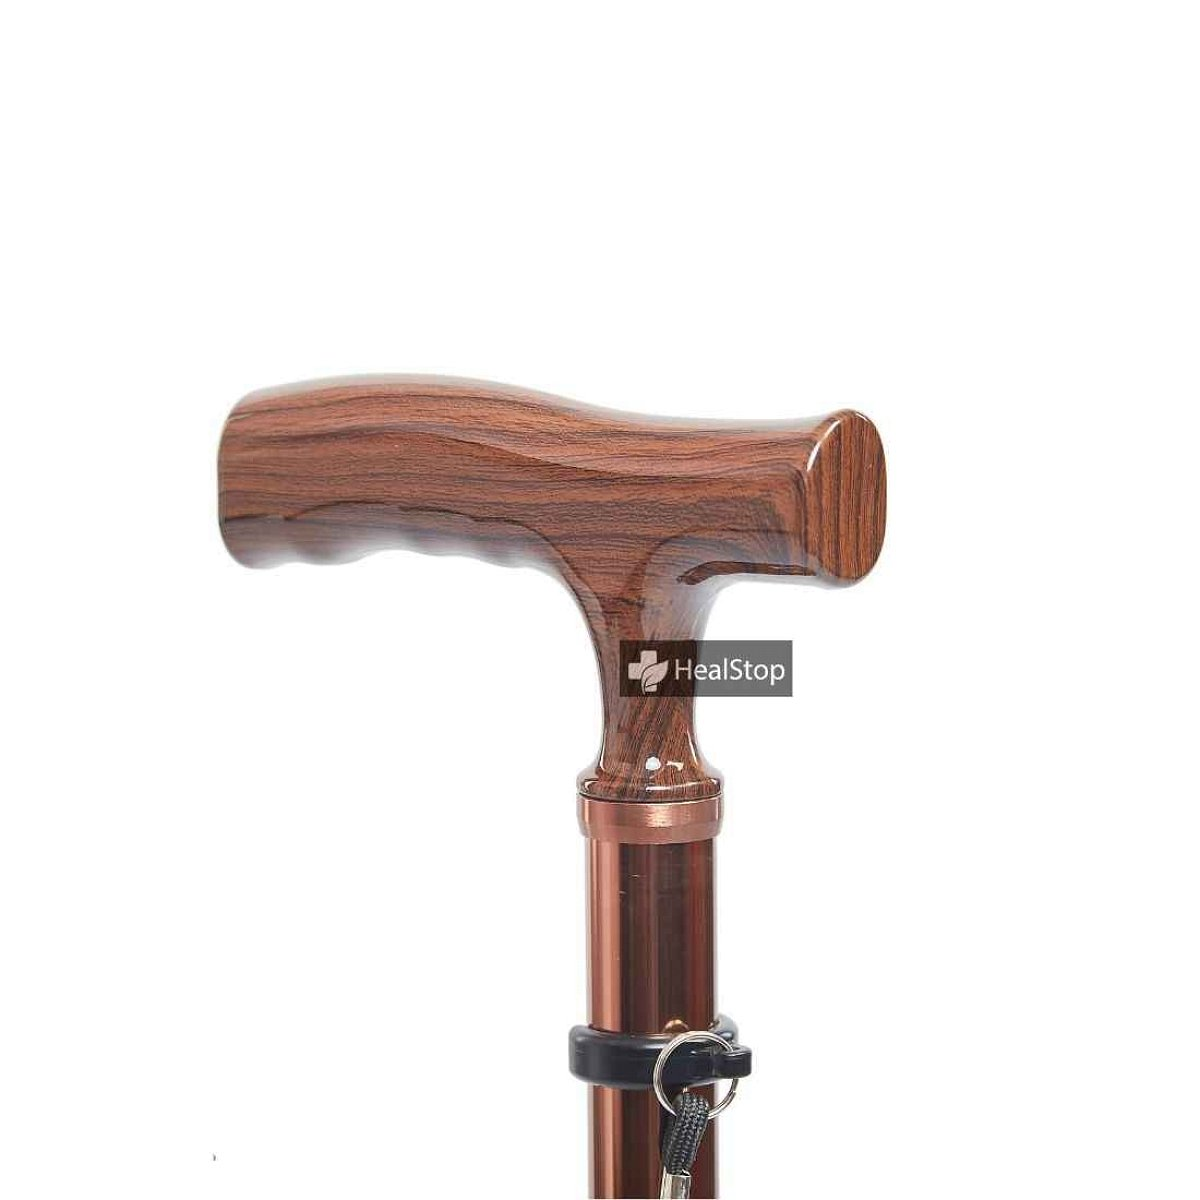 Straight Shank Handle Cane M709 (Champagne Gold)